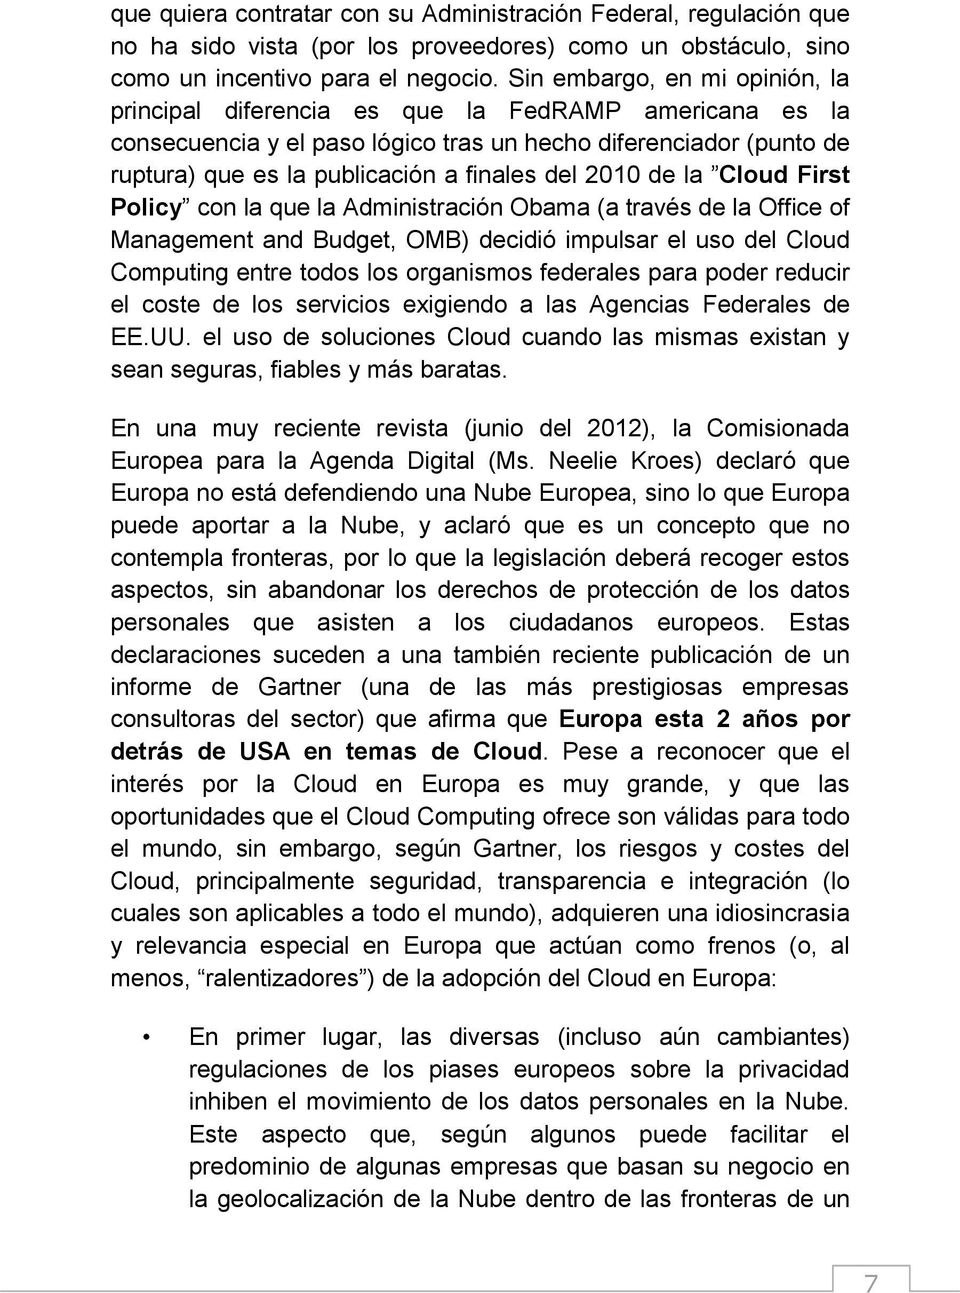 2010 de la Cloud First Policy con la que la Administración Obama (a través de la Office of Management and Budget, OMB) decidió impulsar el uso del Cloud Computing entre todos los organismos federales